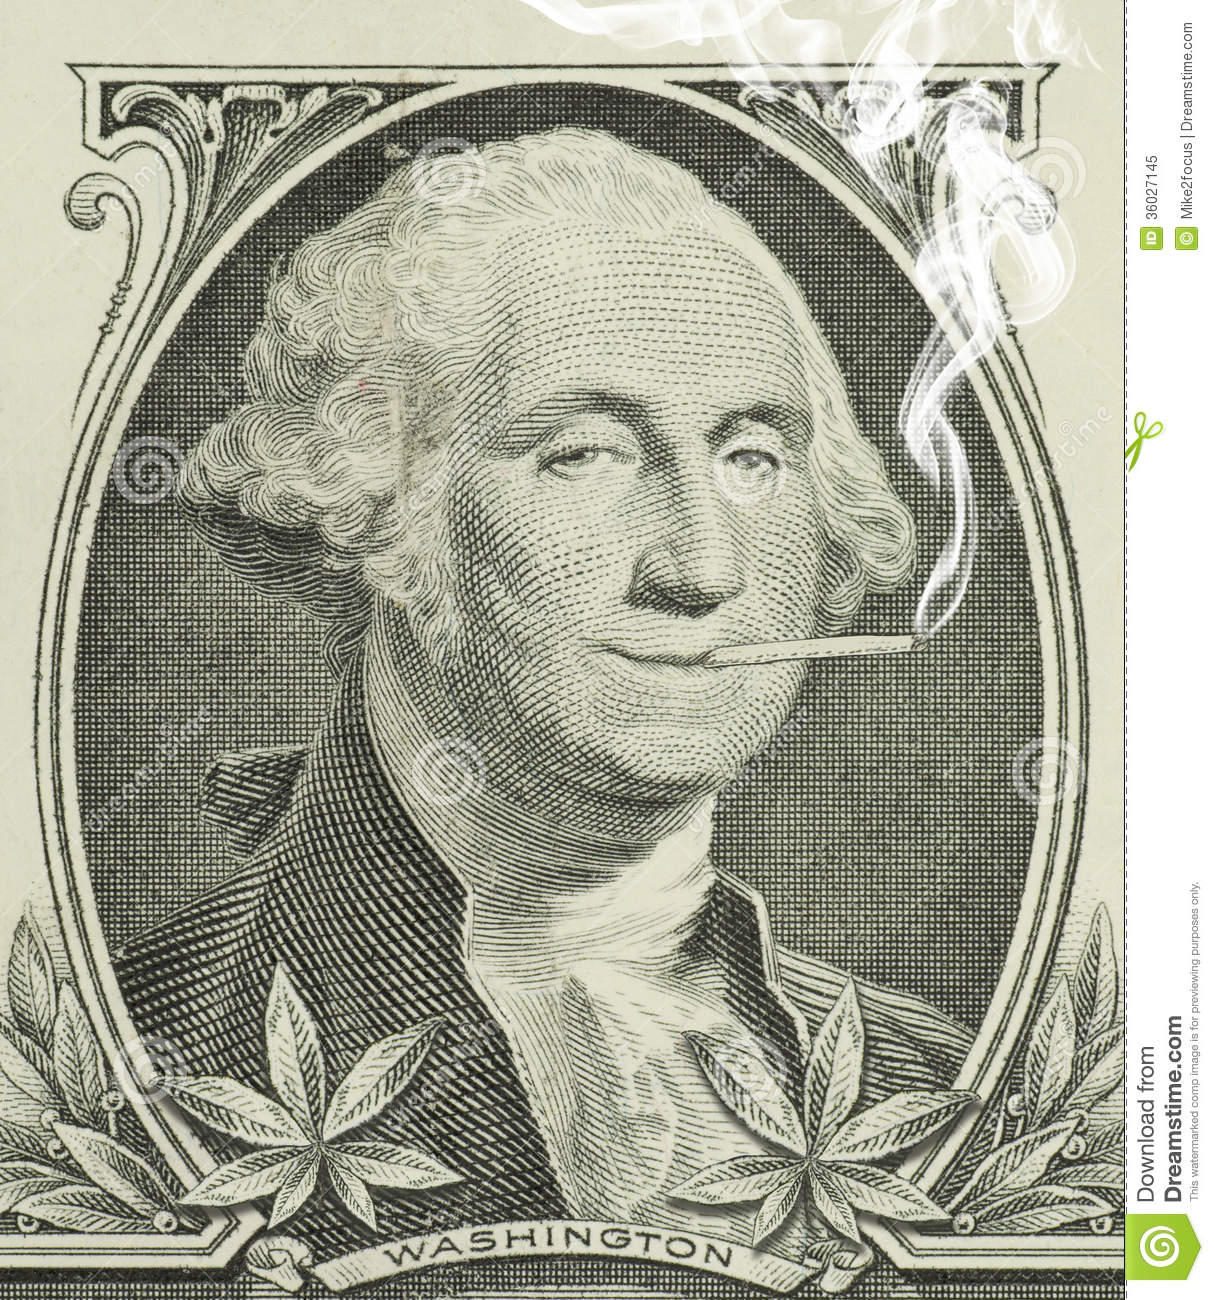 George Washington smoking a joint with pot leaves along the bottom ...